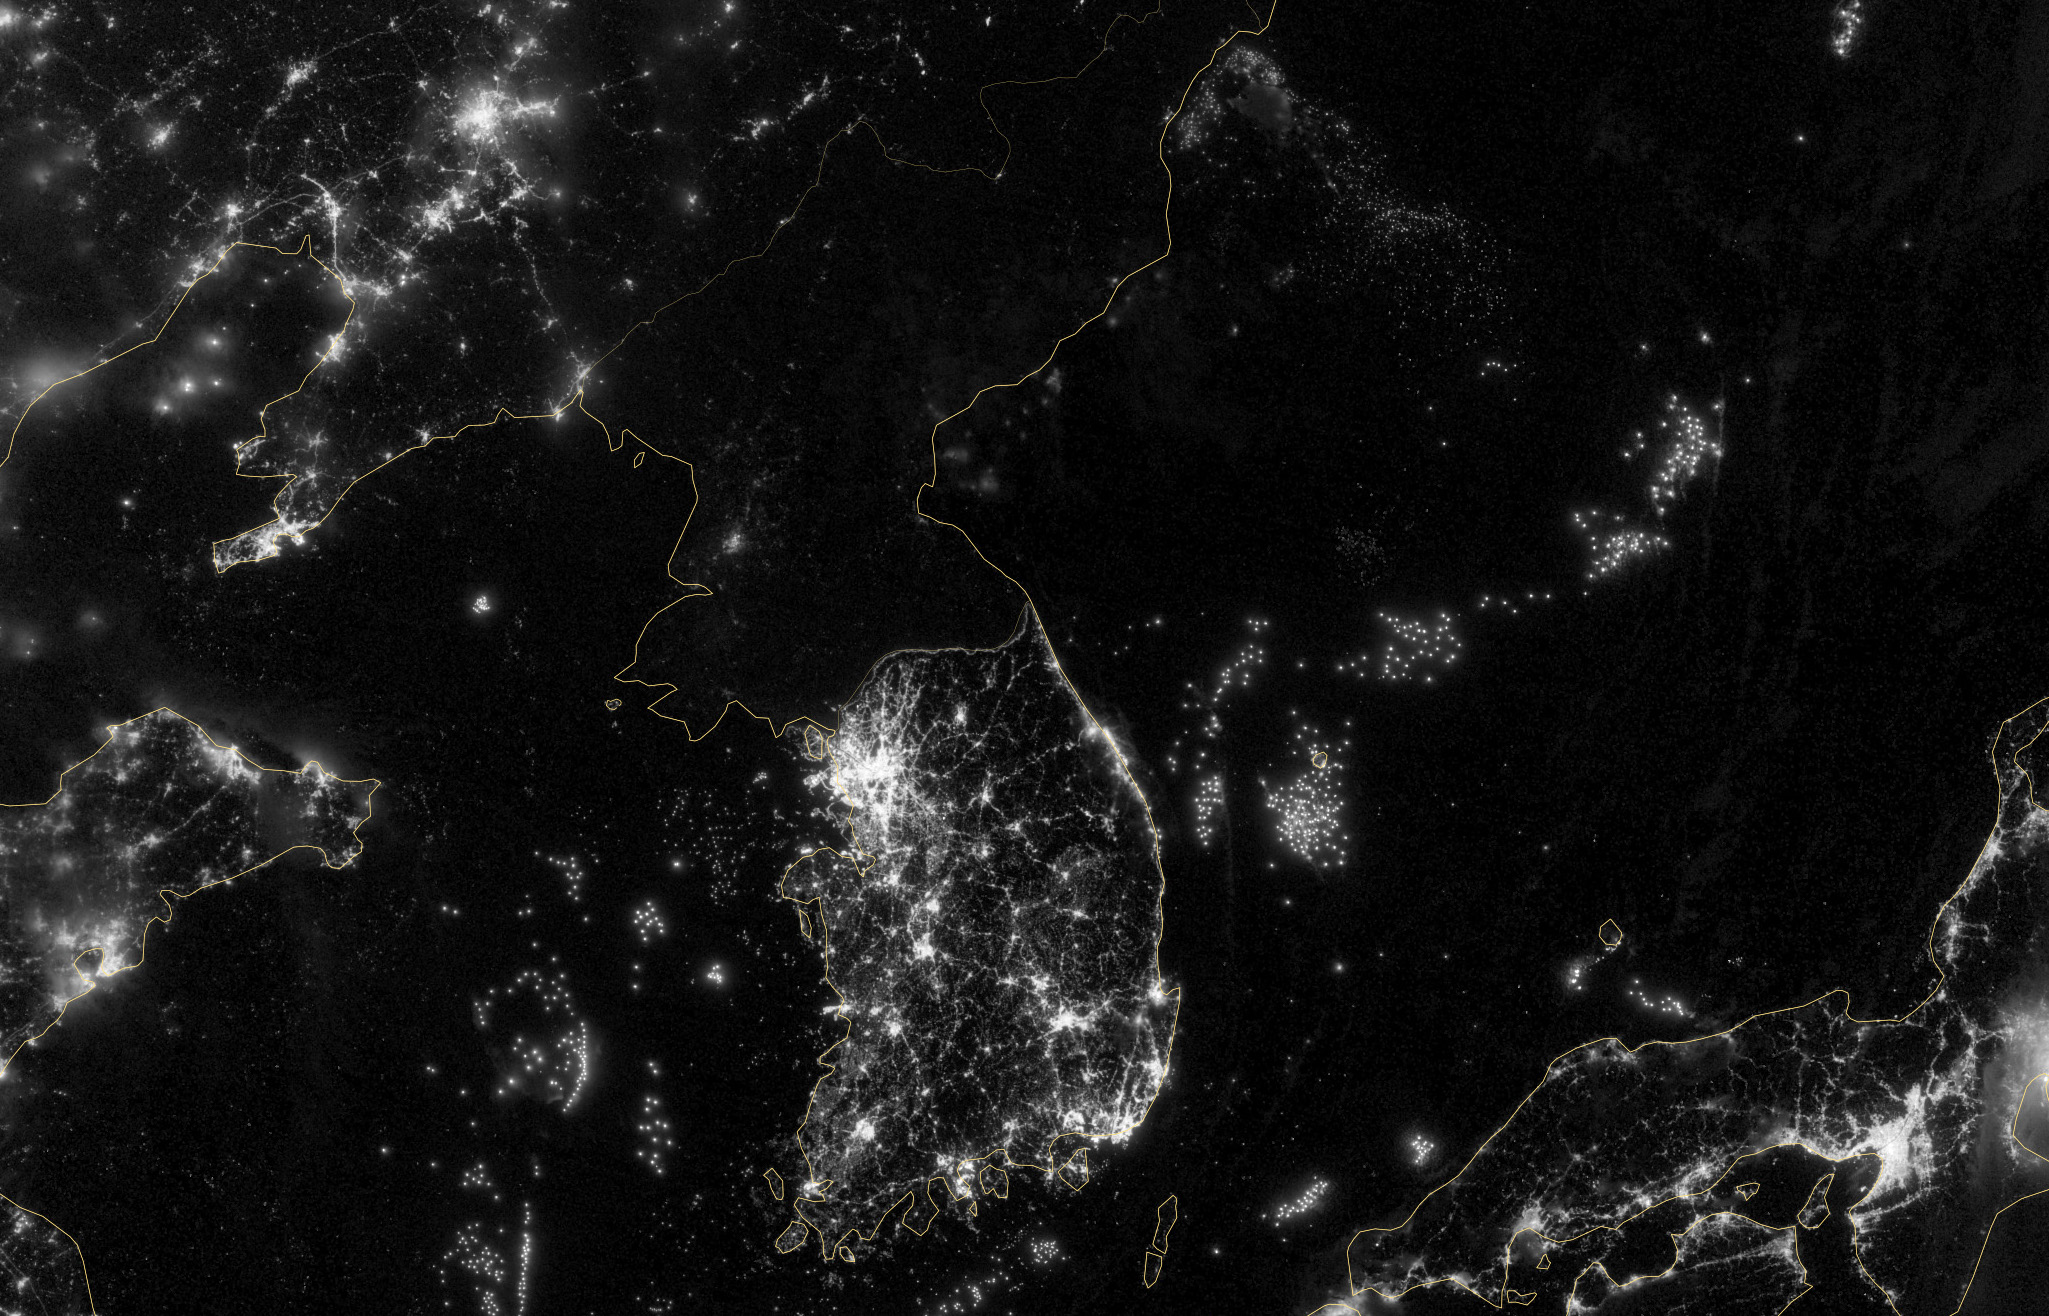 North Korea Defends Blackout Satellite Photos The